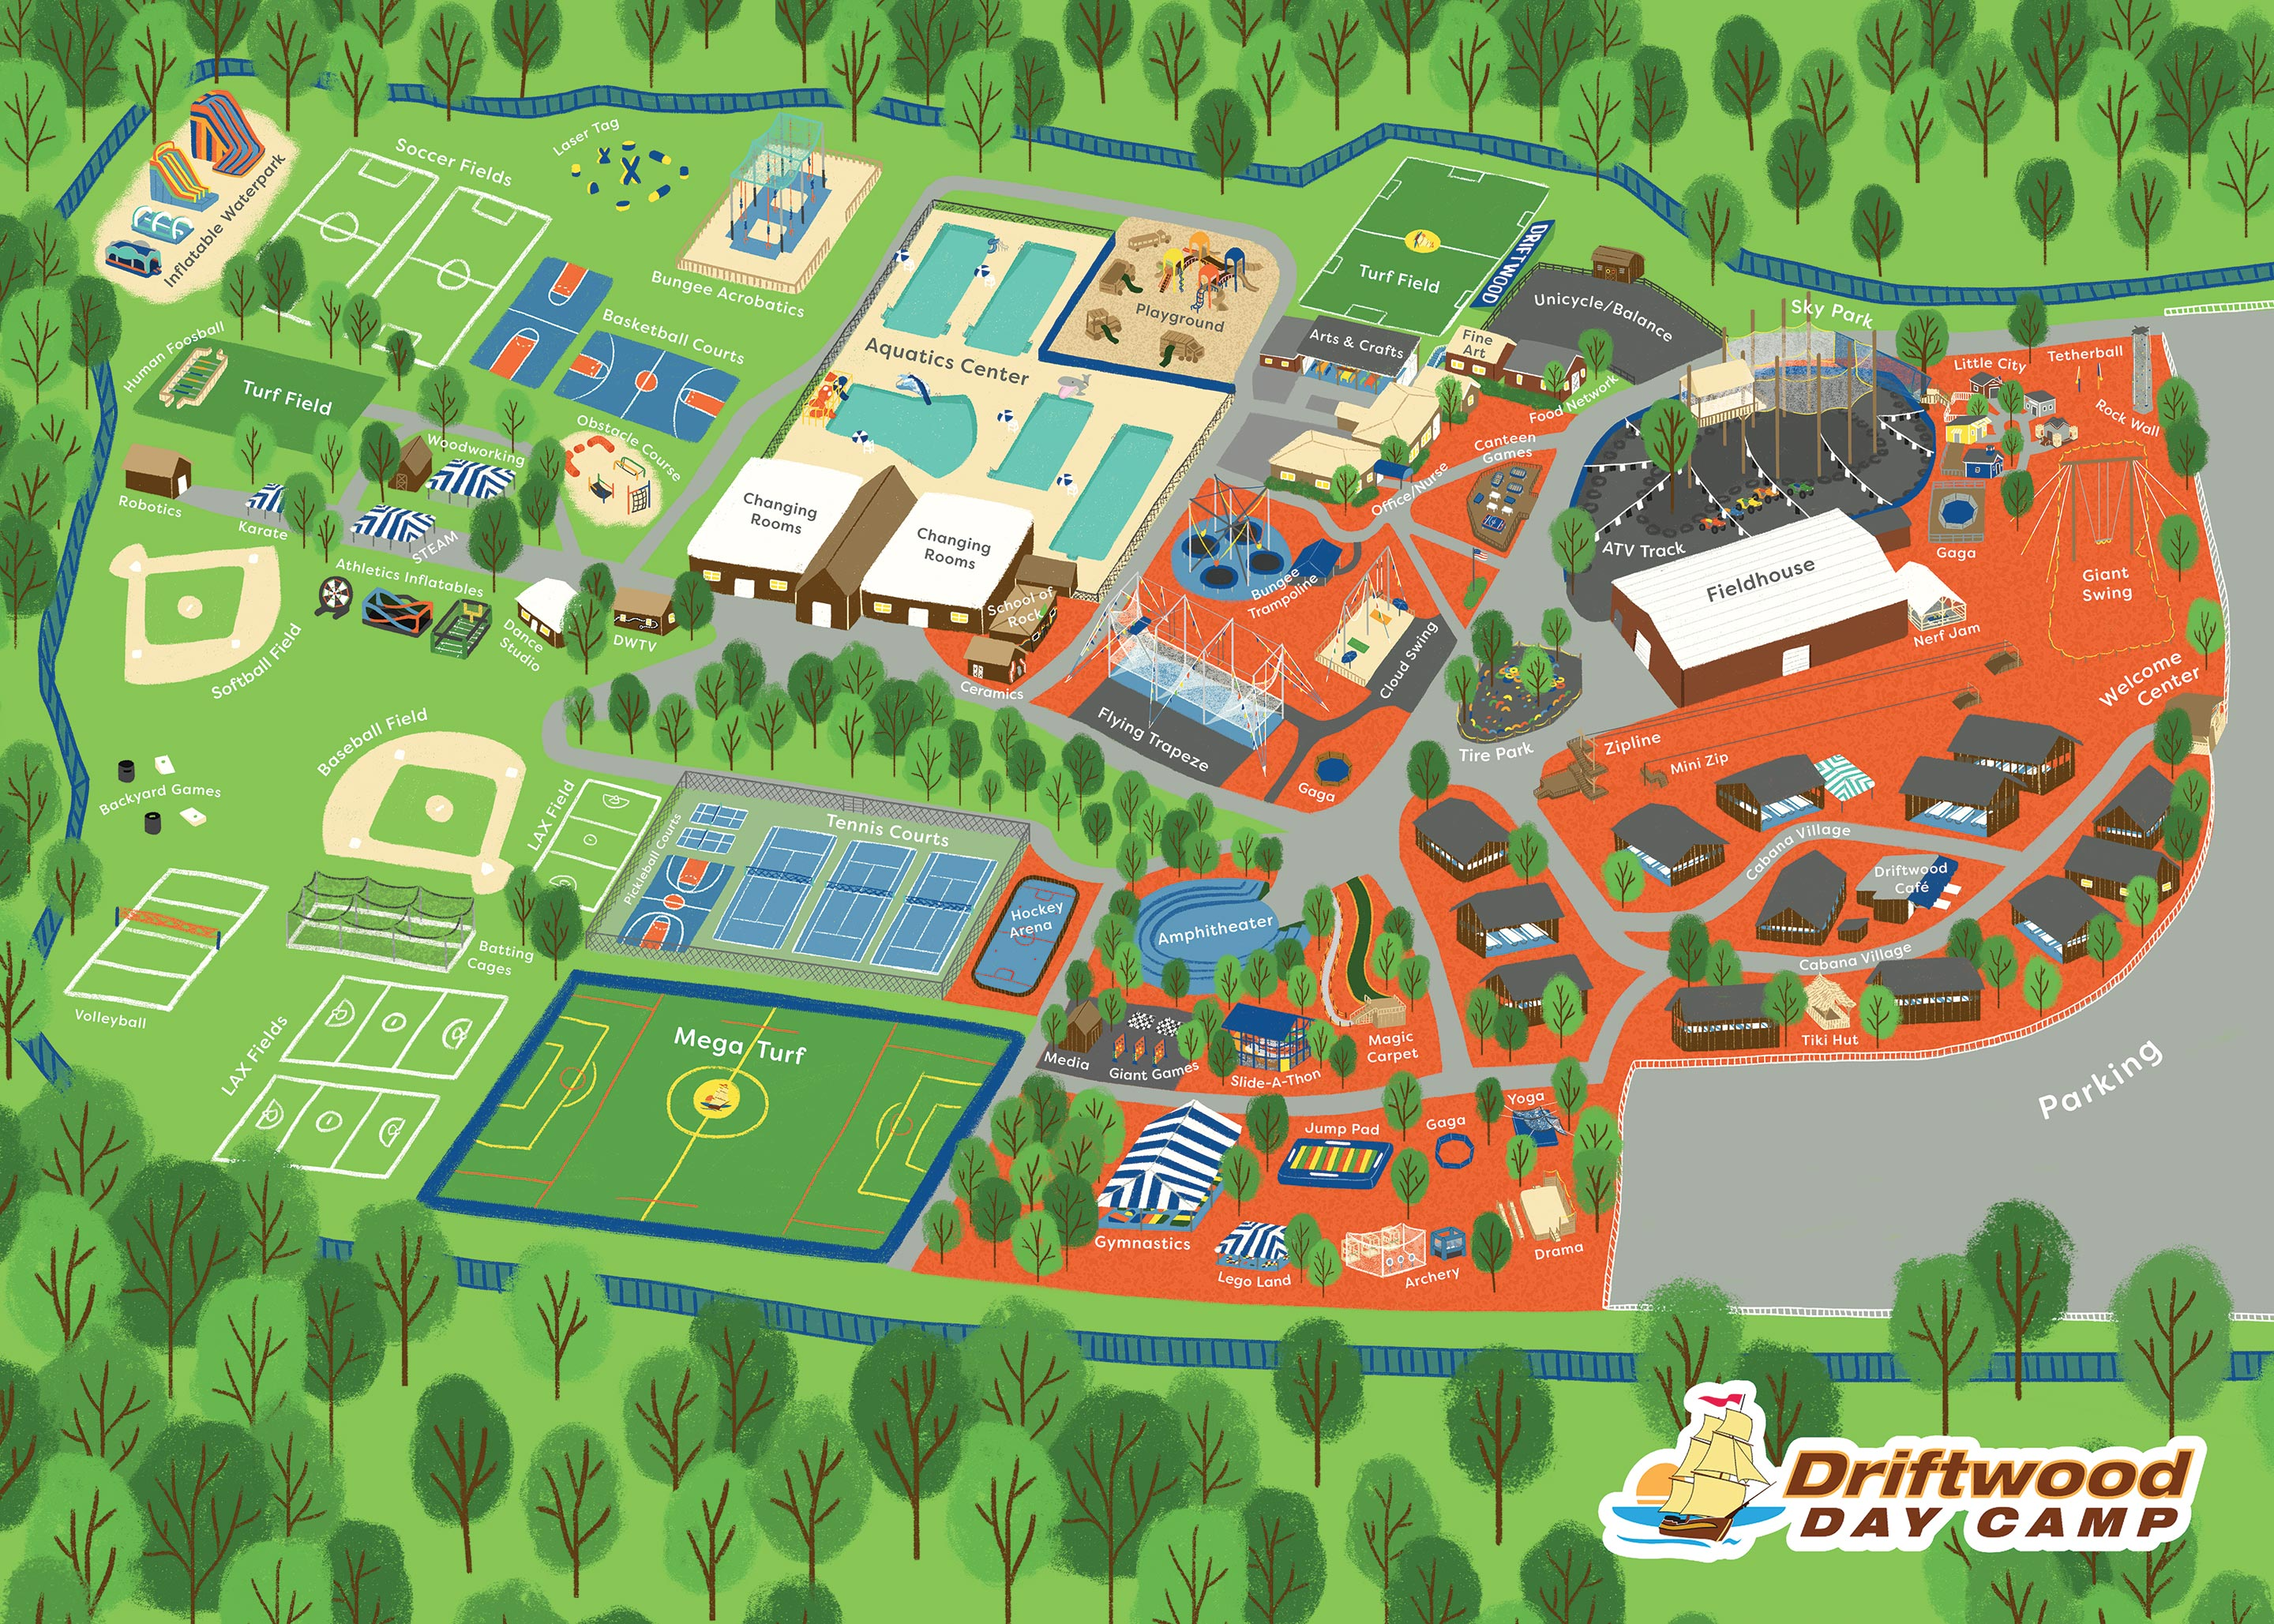 Illustrated map of Driftwood Day Camp